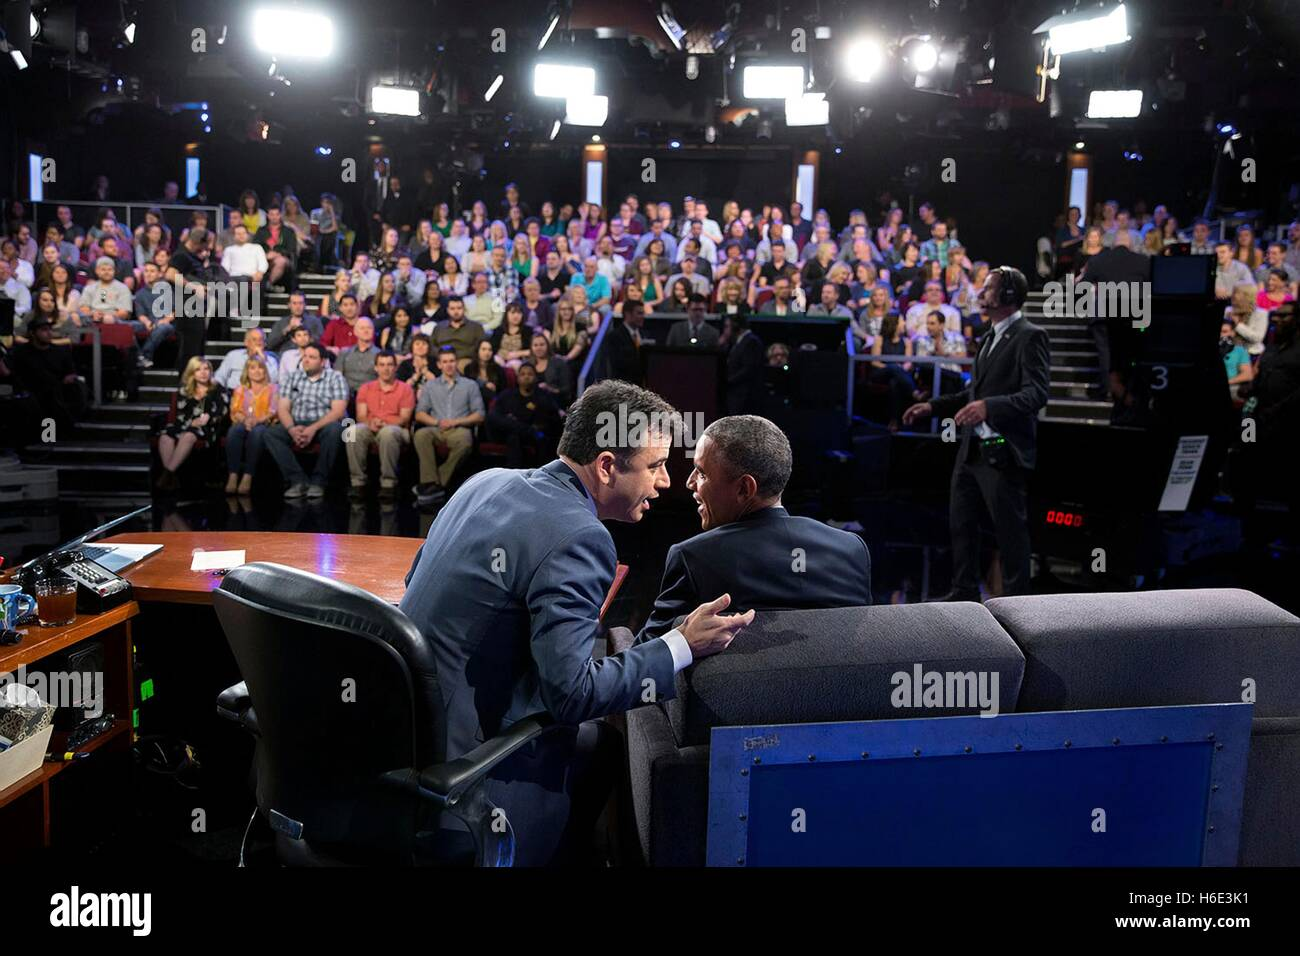 Television talk show host Jimmy Kimmel interviews U.S. President Barack Obama during a taping of the Jimmy Kimmel - Stock Image